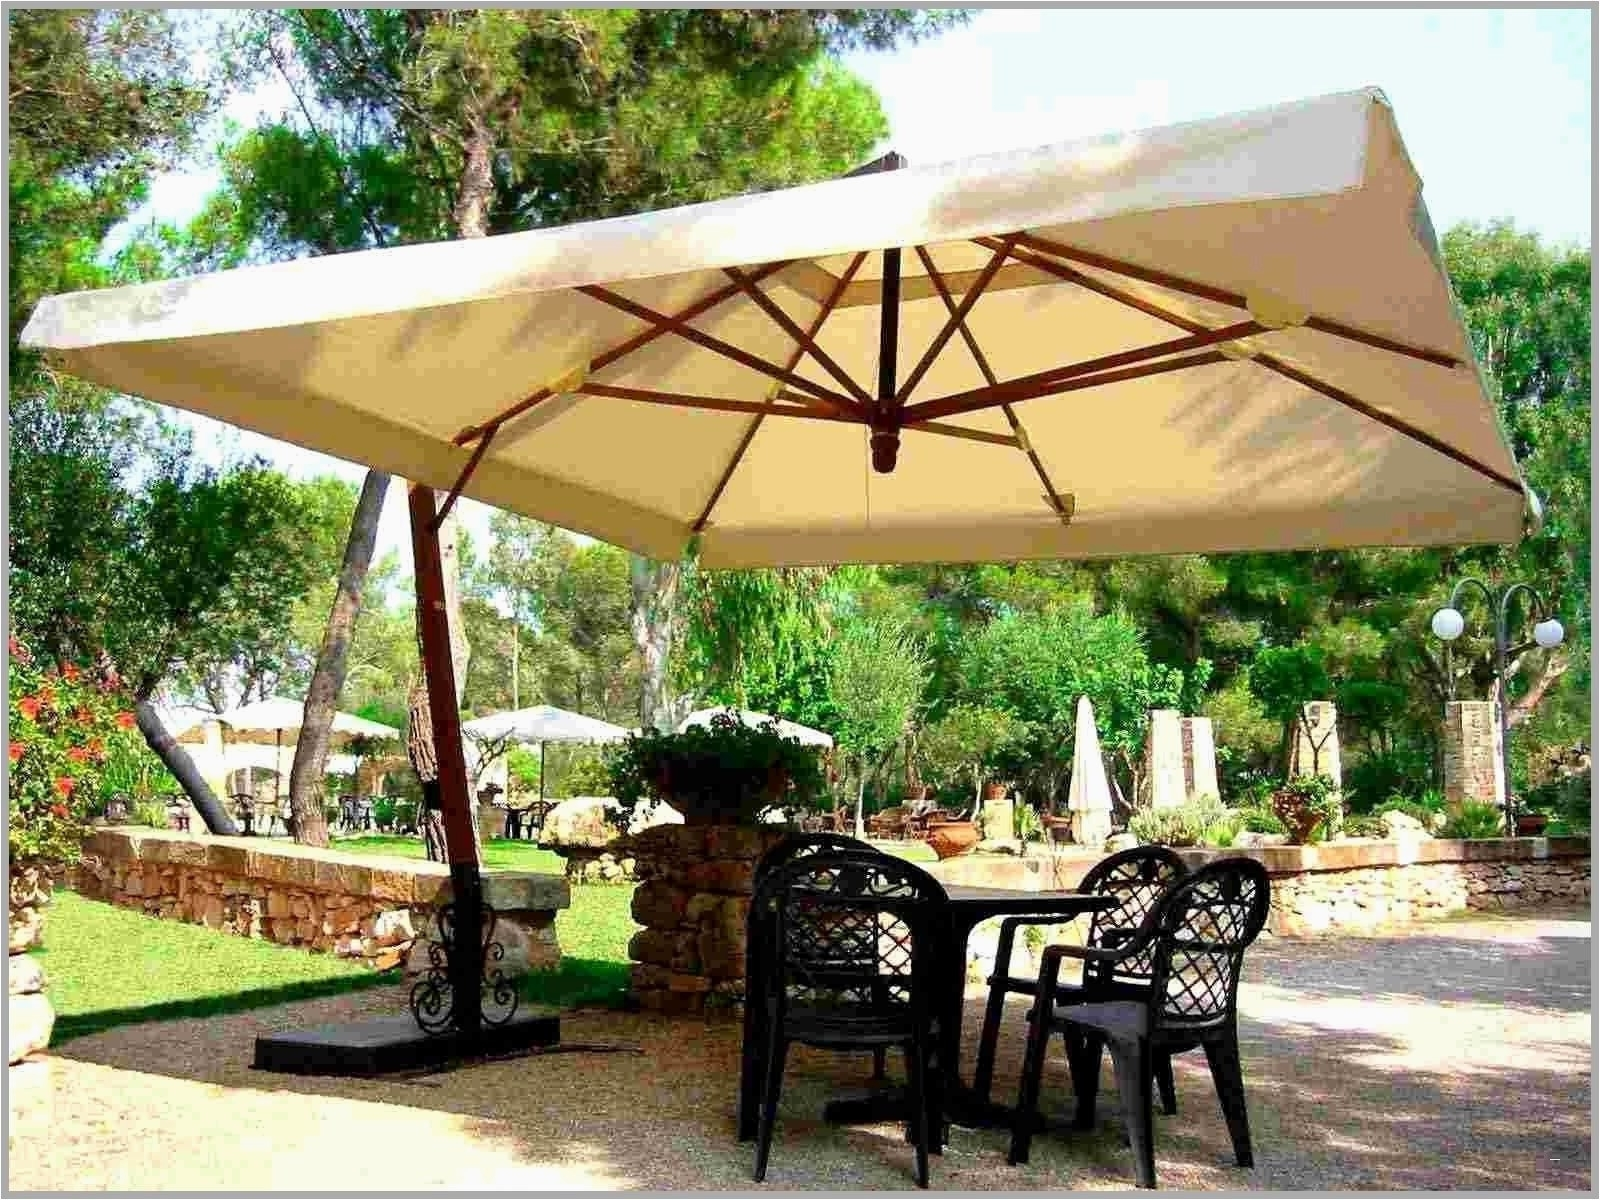 Offset Patio Umbrellas With Base Throughout Current Simply Shade Offset Patio Umbrella Awesome Fset Patio Umbrella With (View 13 of 20)